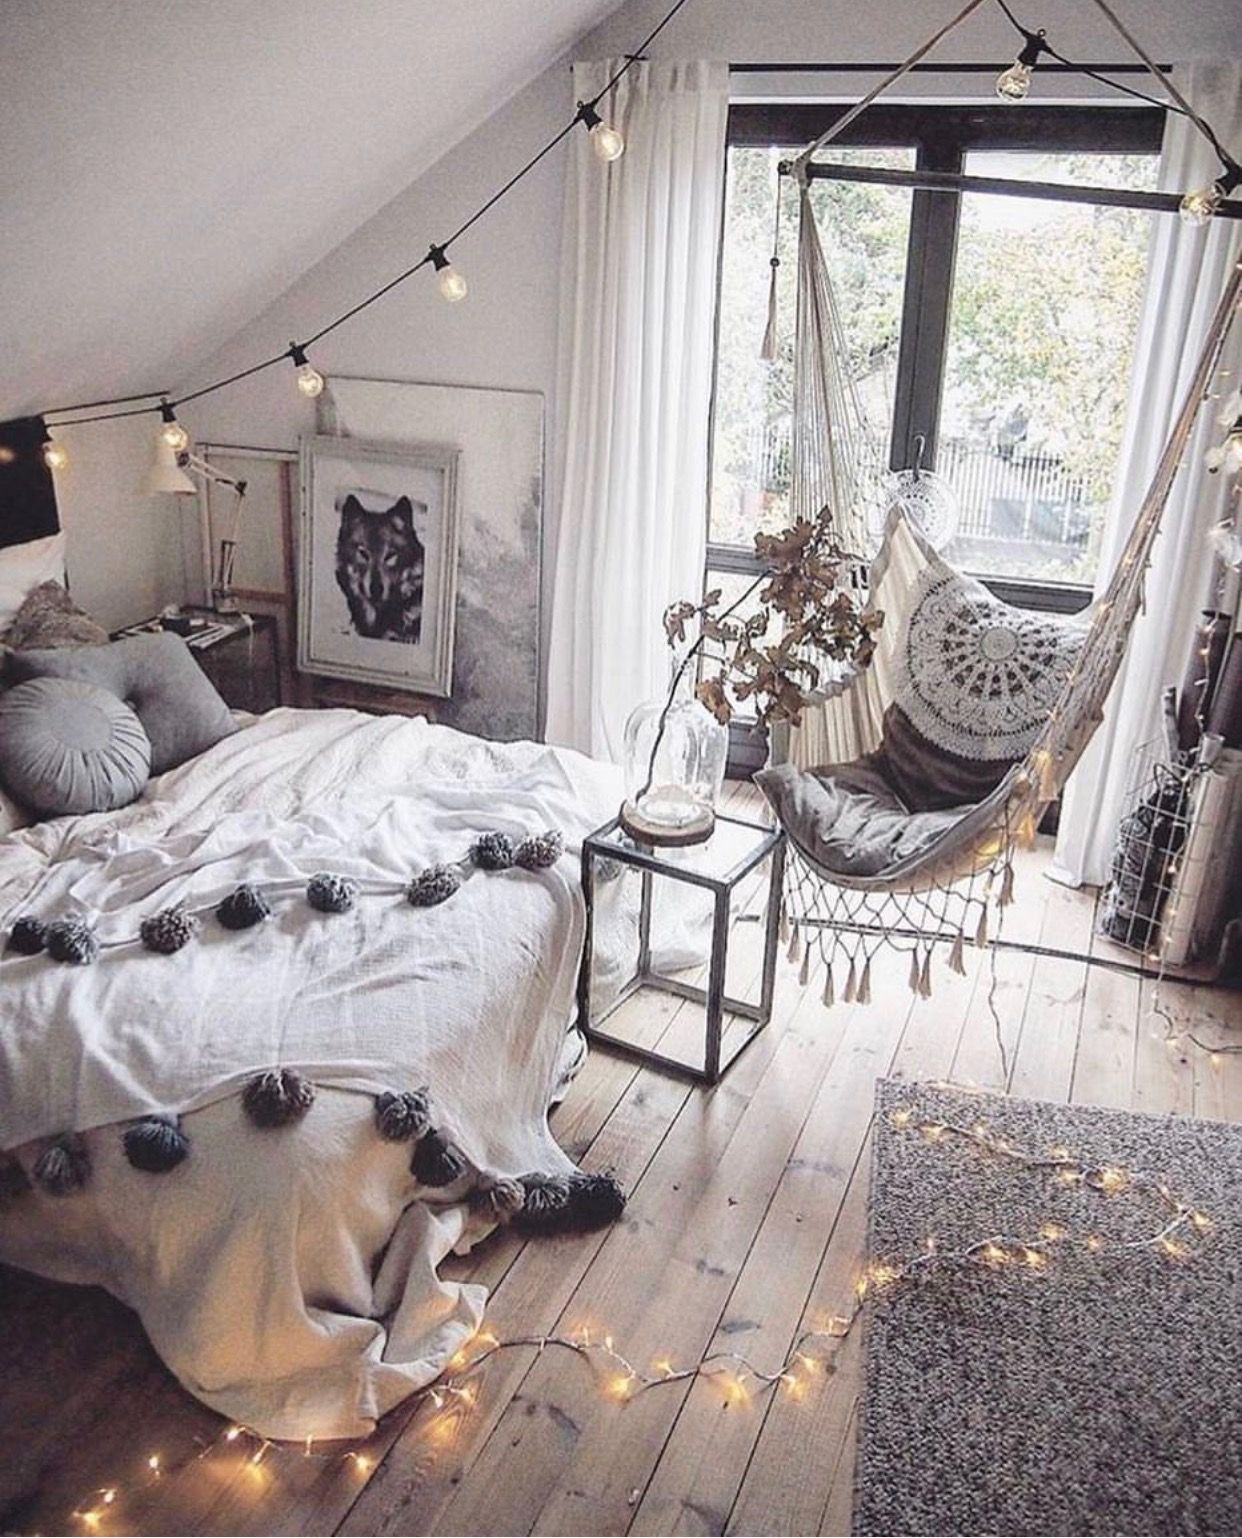 Great Decoration Idea to Make Bedroom romantic and beautiful